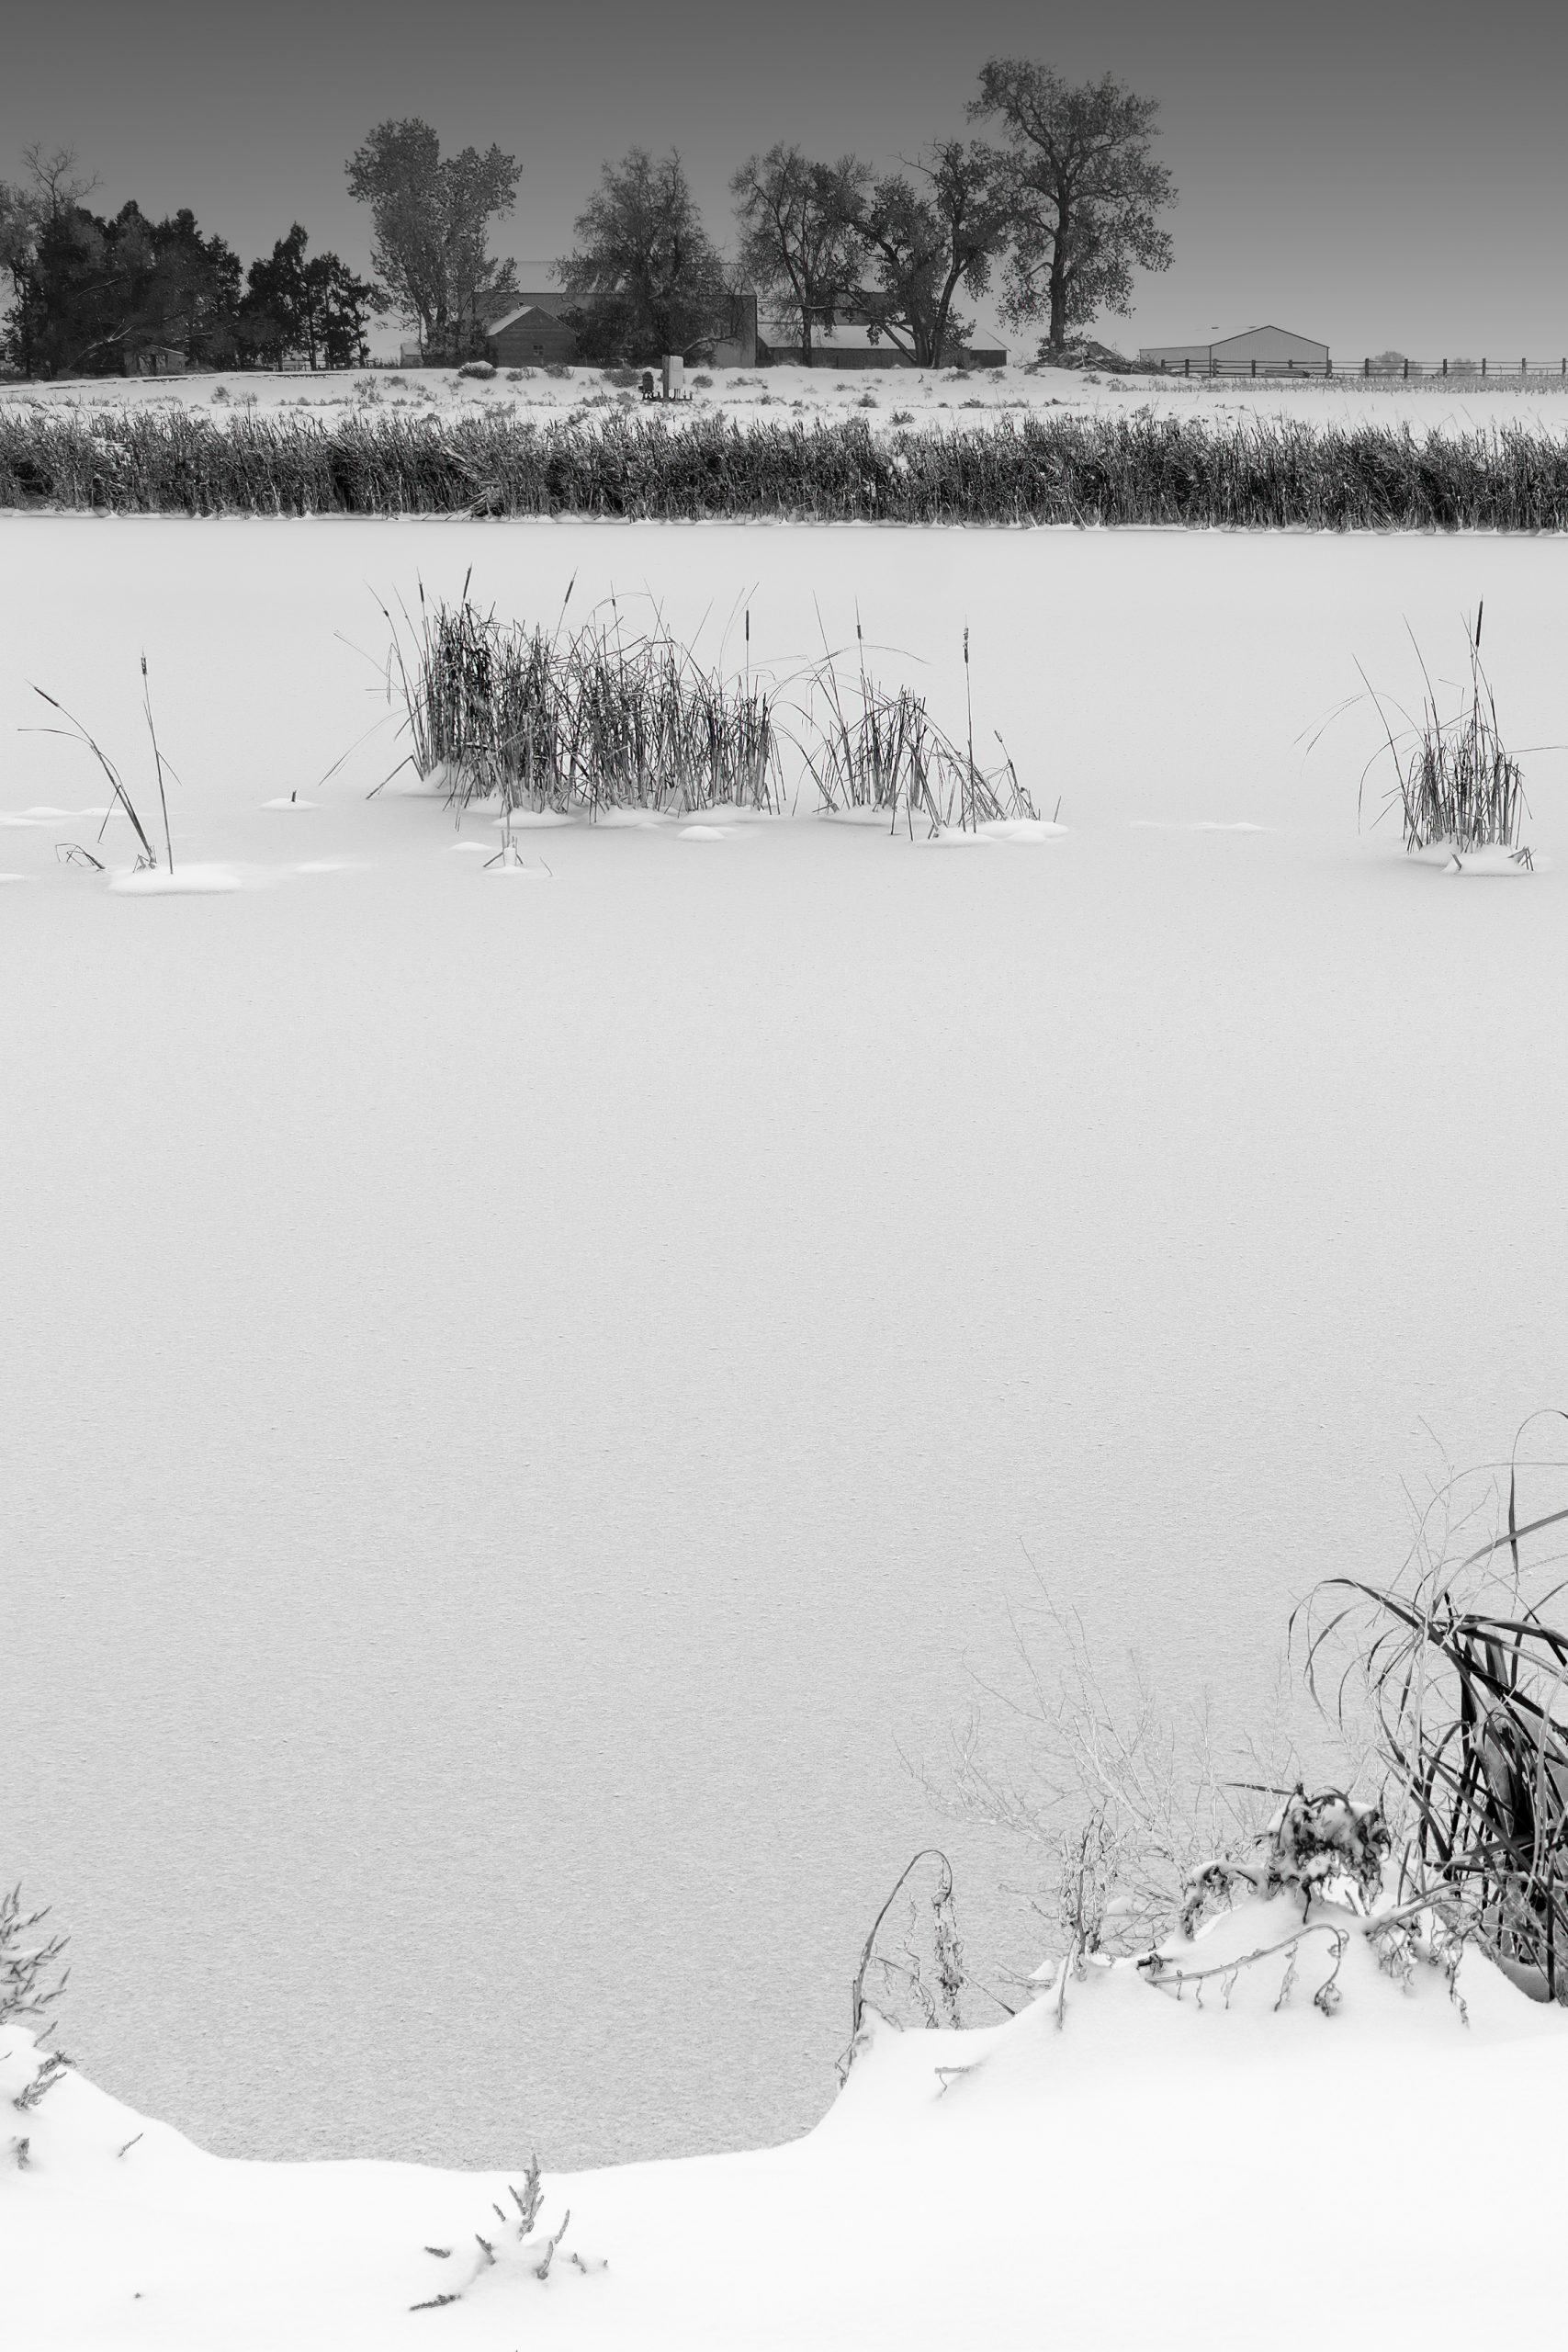 Frozen Winter Pond at the Farmhouse